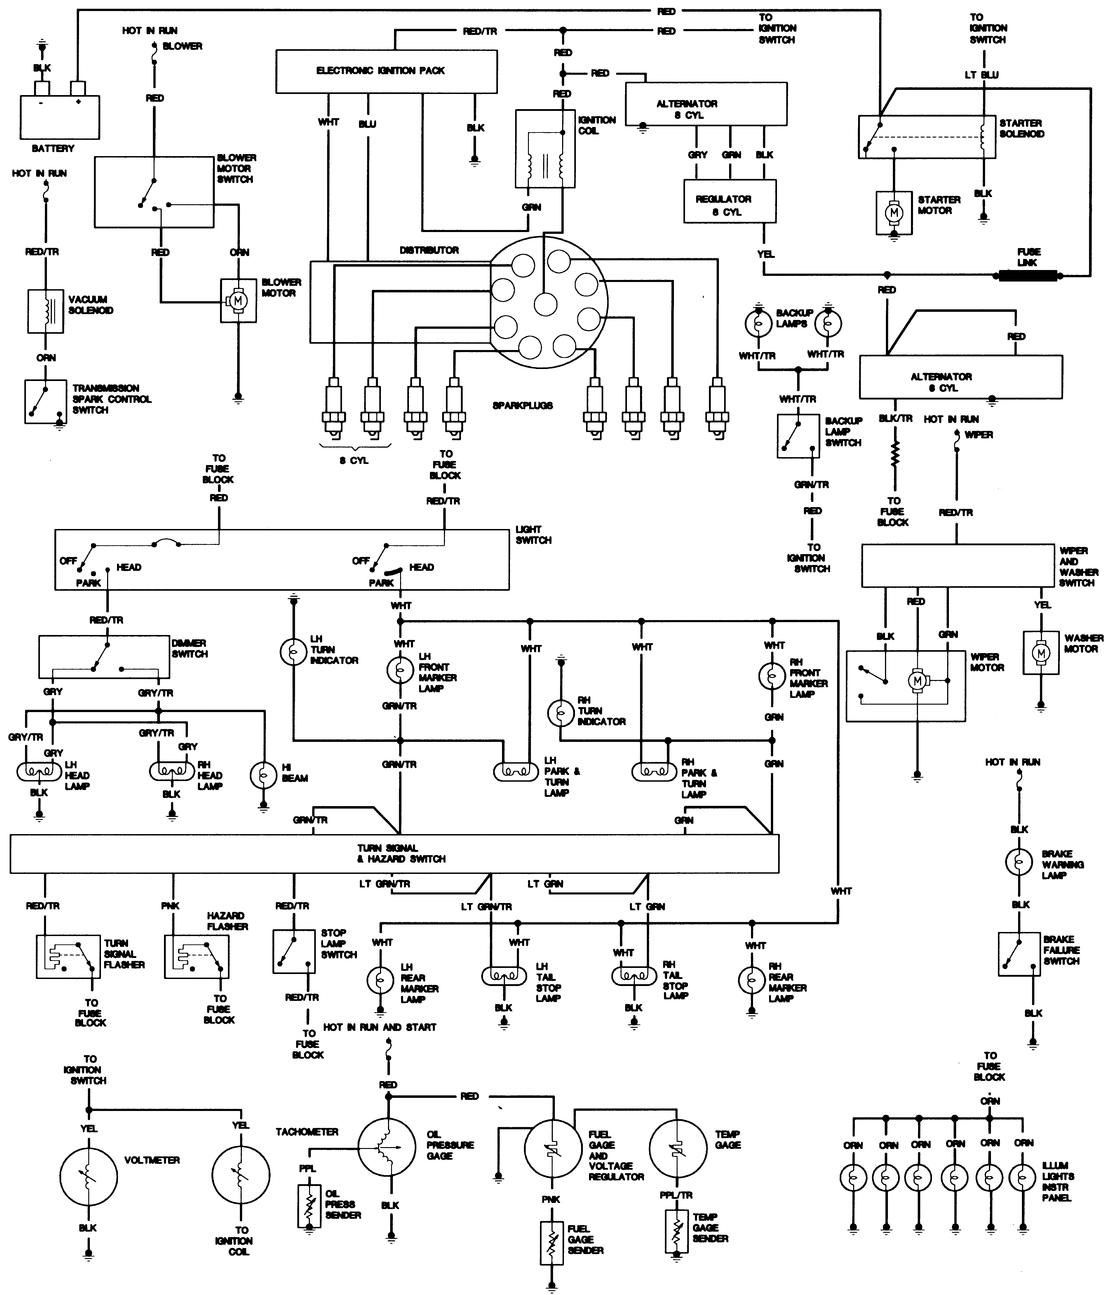 1980 cj5 wiring diagram furthermore jeep cj7 tachometer wiring jeep headlight switch wiring furthermore jeep wrangler steering column [ 1111 x 1295 Pixel ]